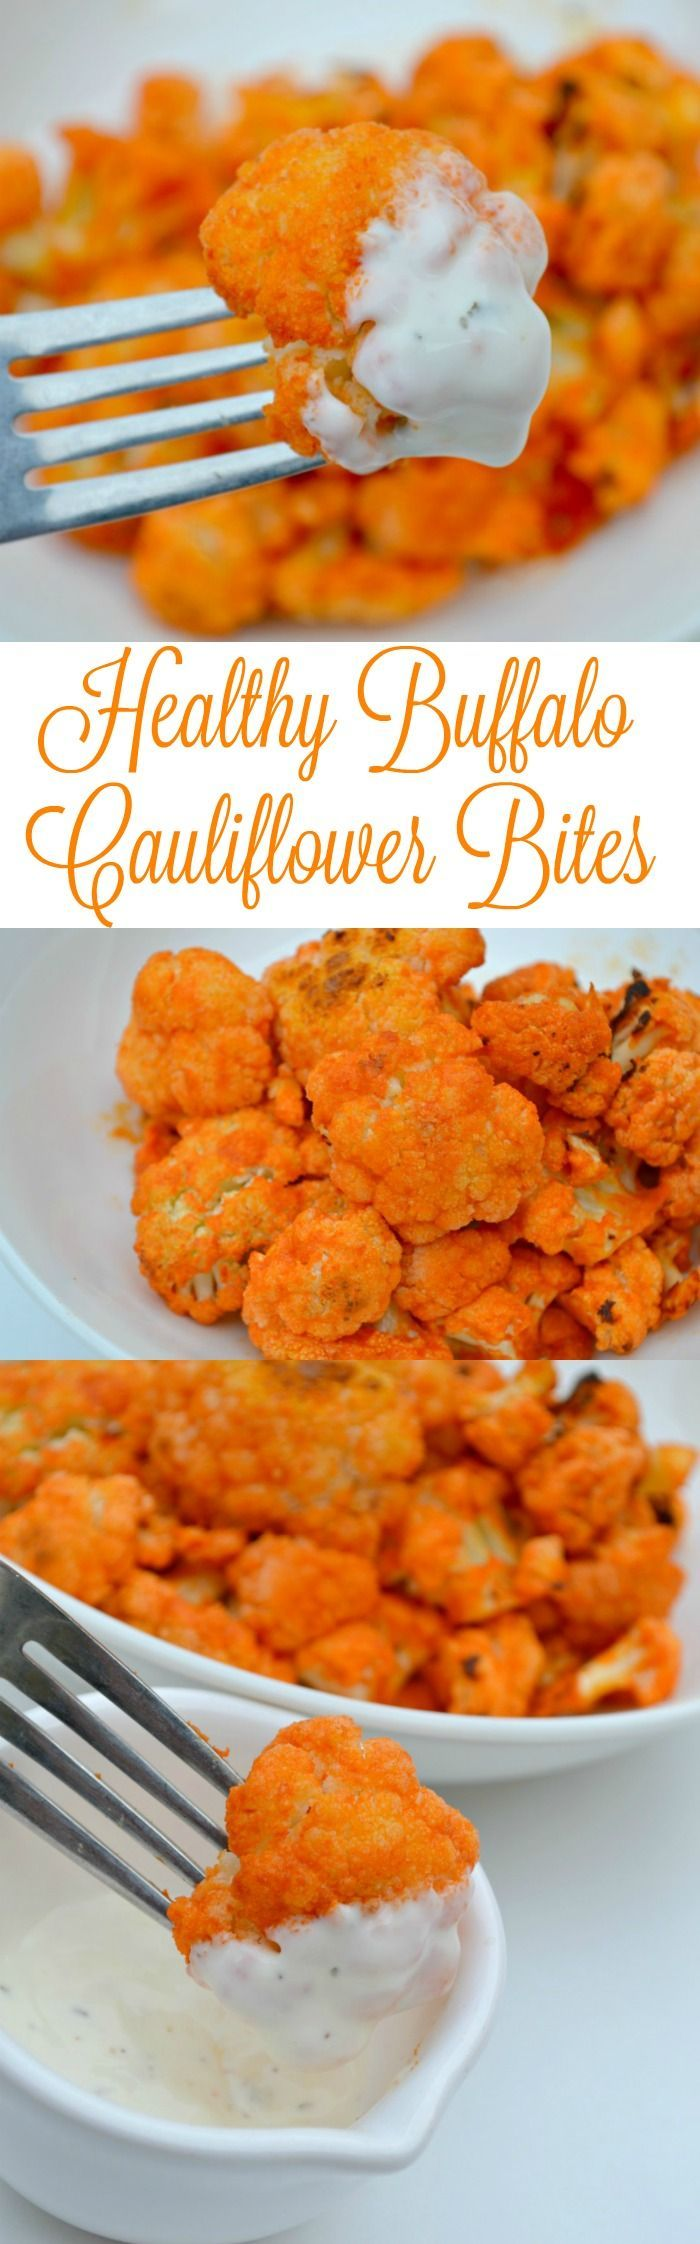 Healthy Buffalo Cauliflower Bites Recipe